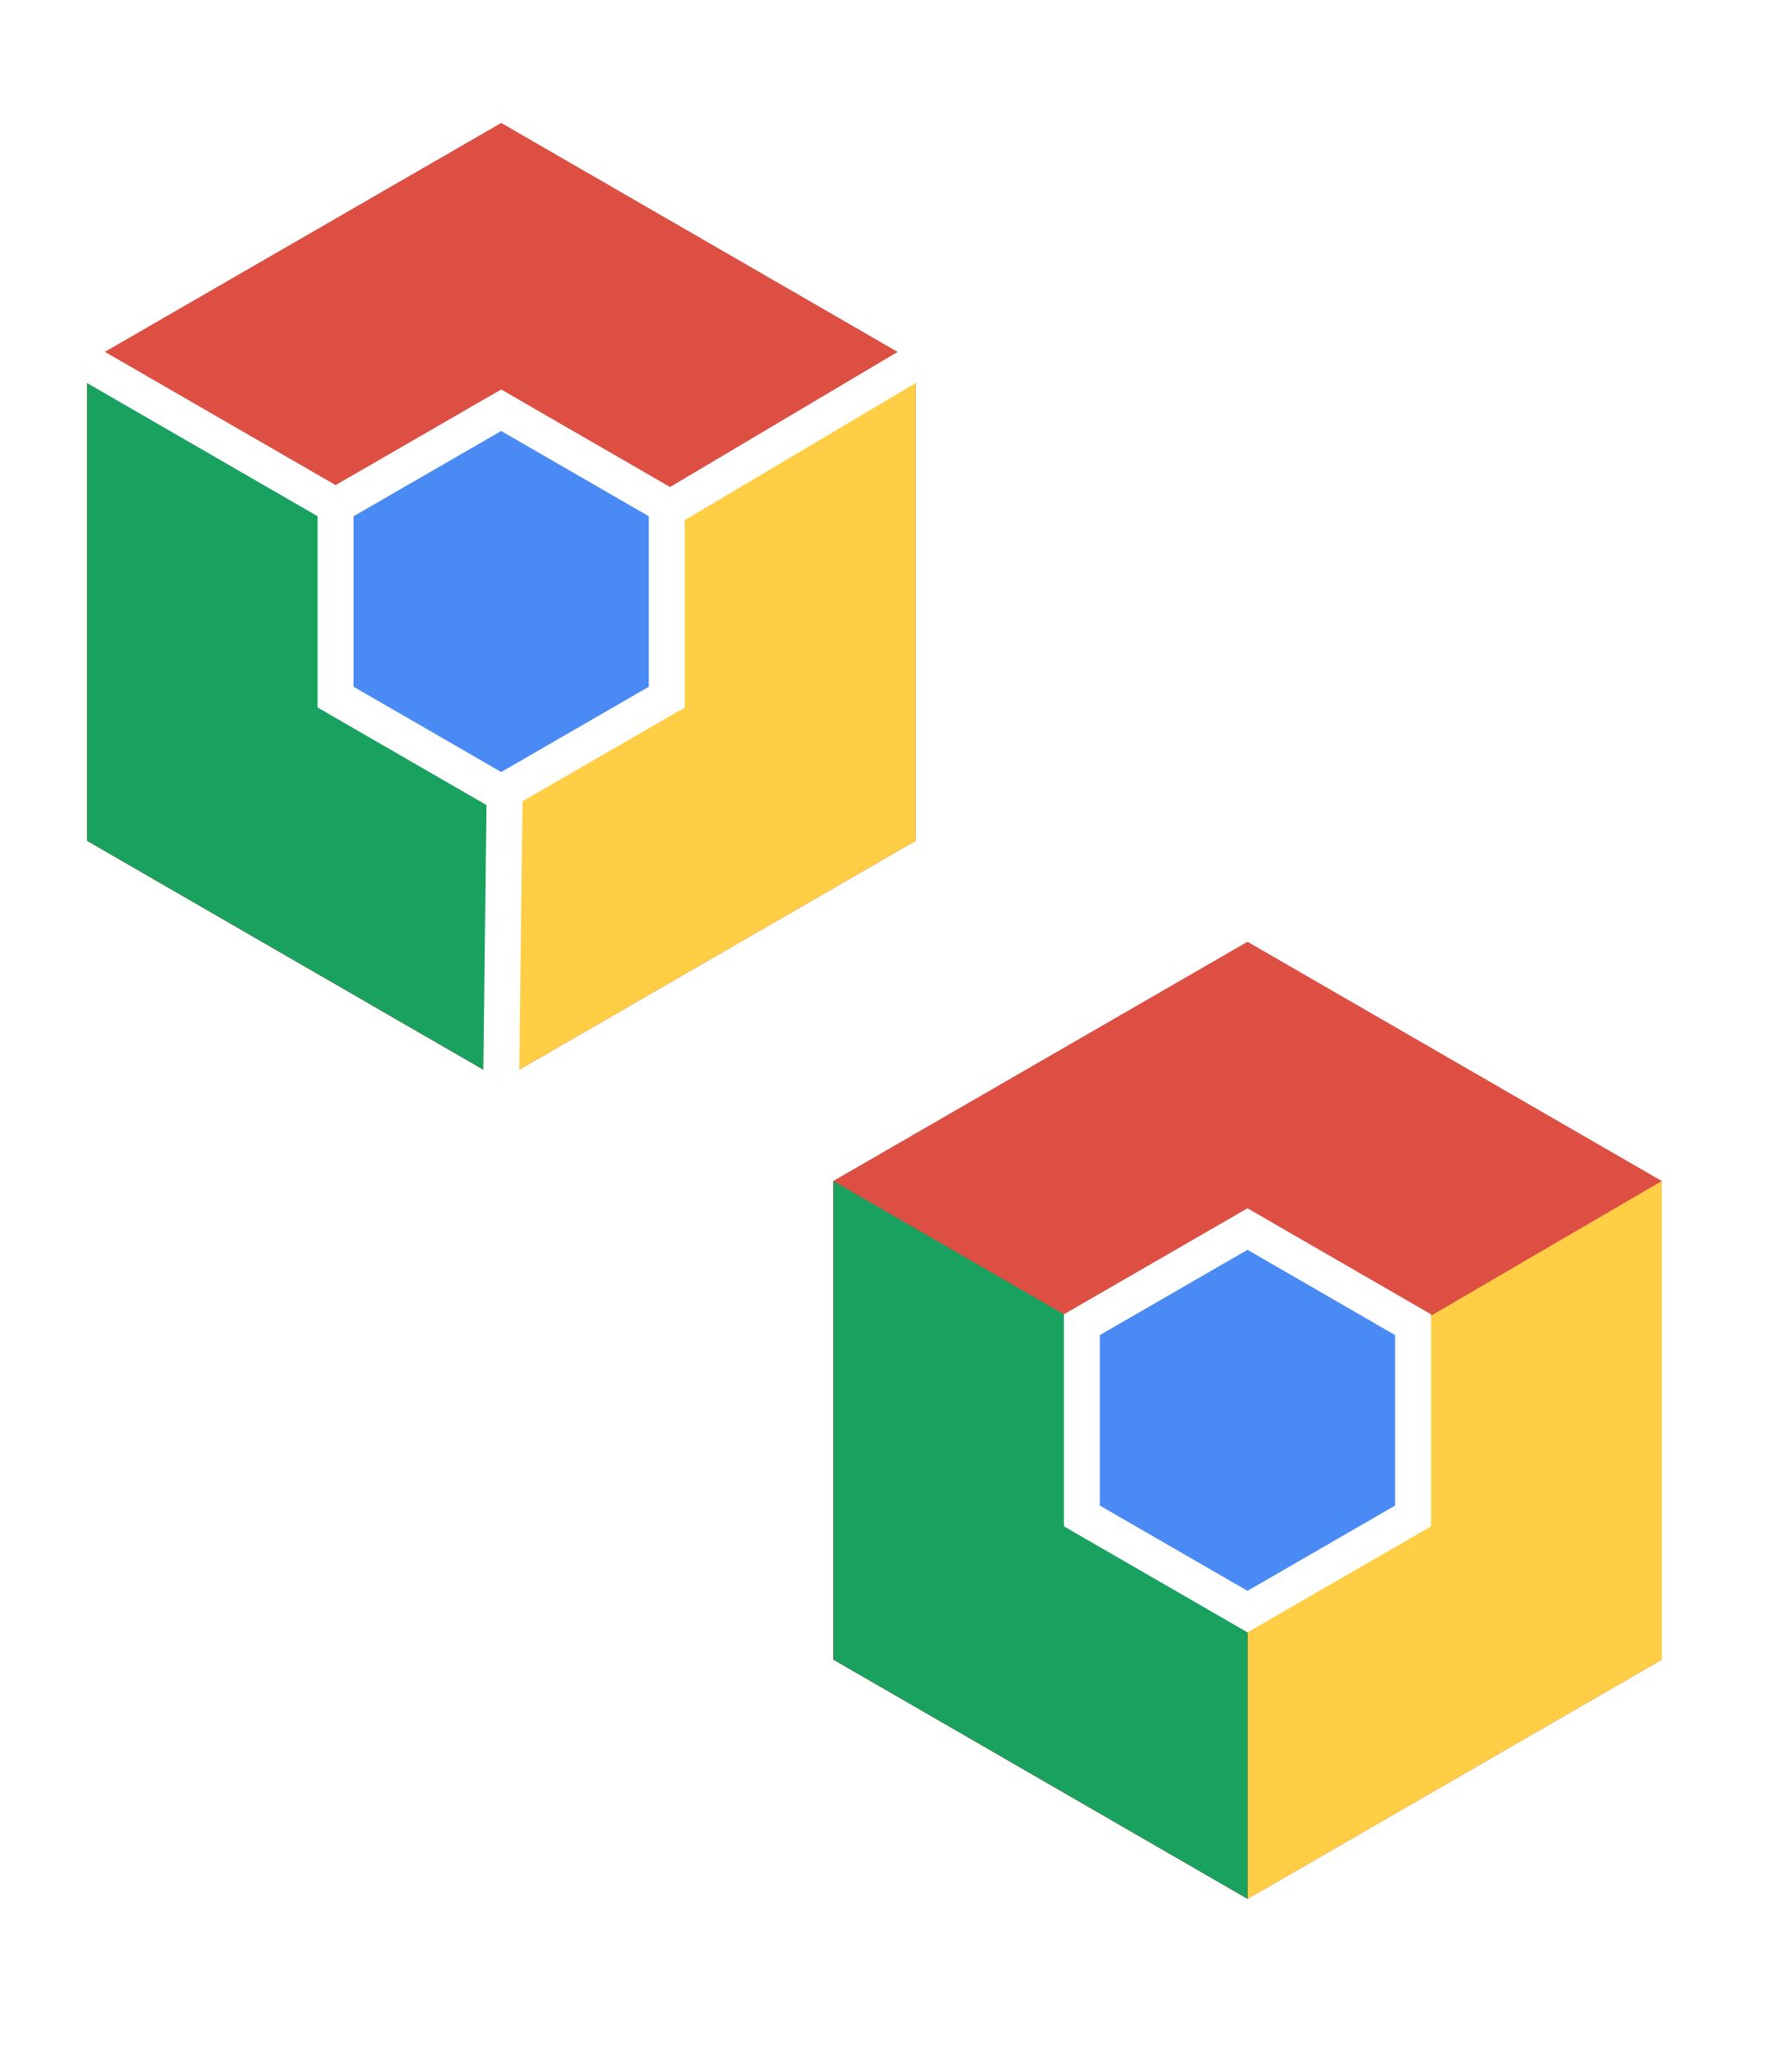 chrome inspired hexagon logo color by monsterbraingames